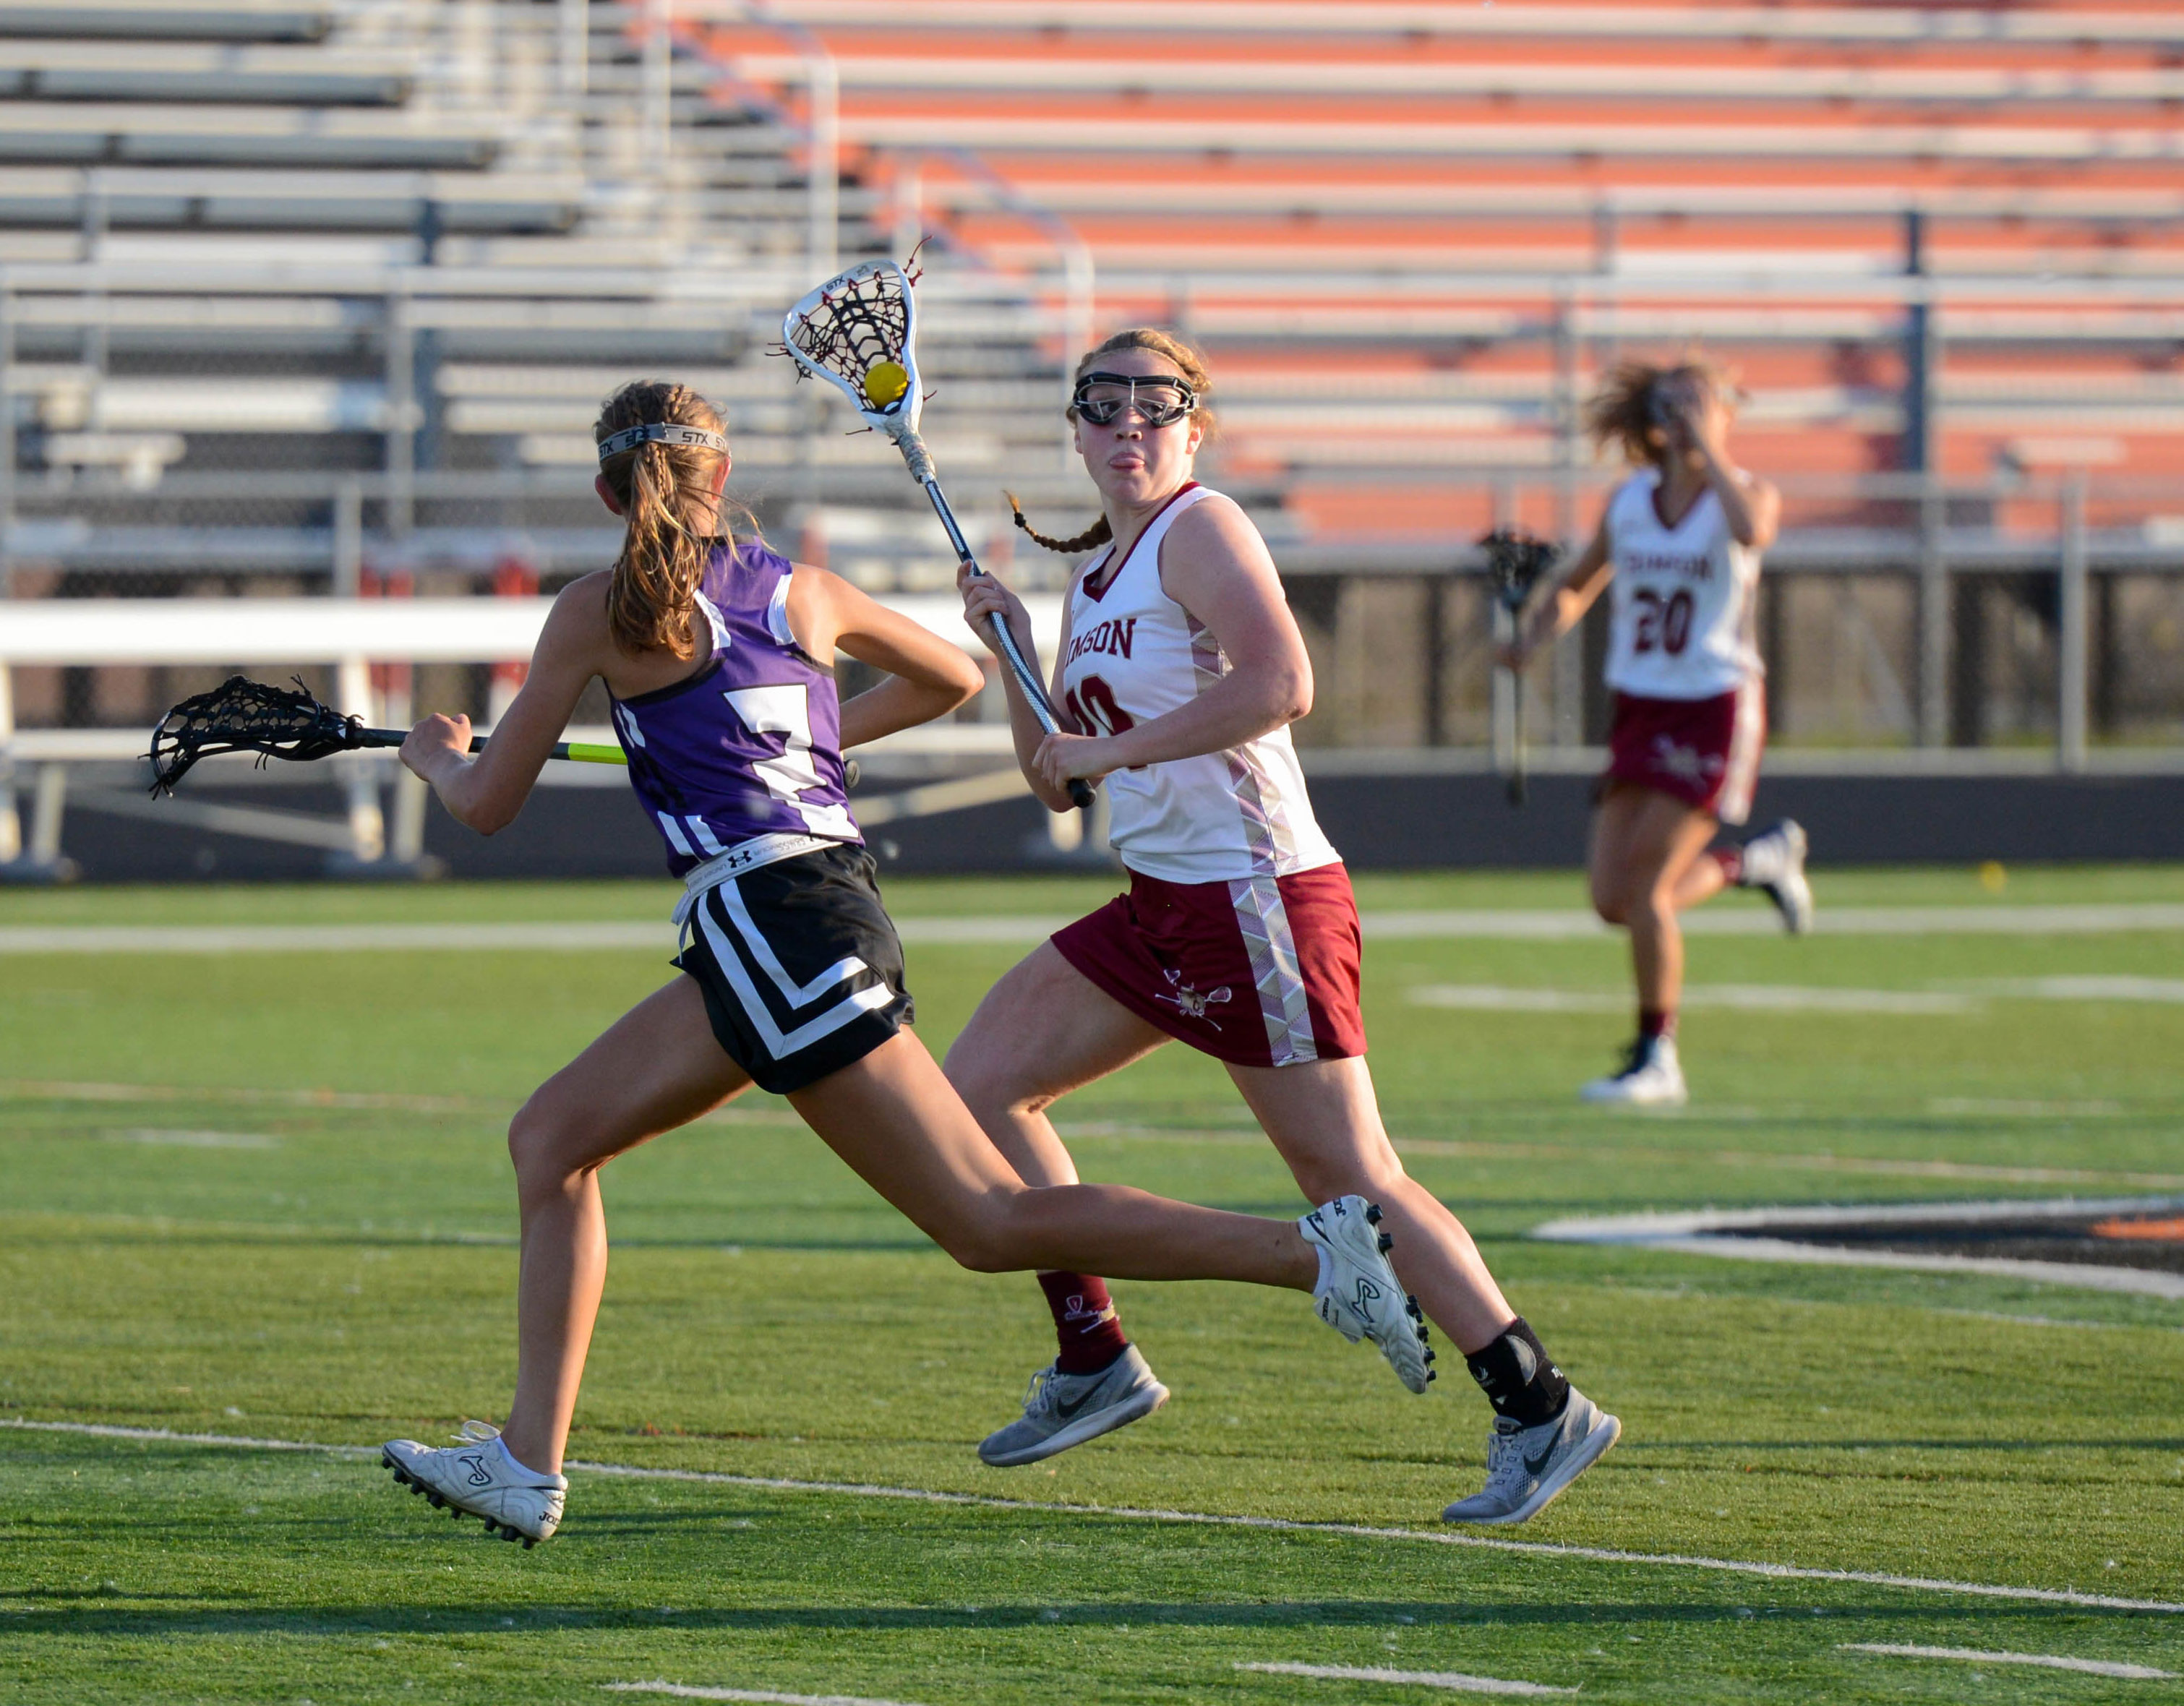 Maple Grove midfielder Emily Herdine (70) passes to a teammate in the Section 8 championship at Osseo High School on Wednesday night. Hardine finished the game with 6 goals. Photo by Carter Jones, SportsEngine